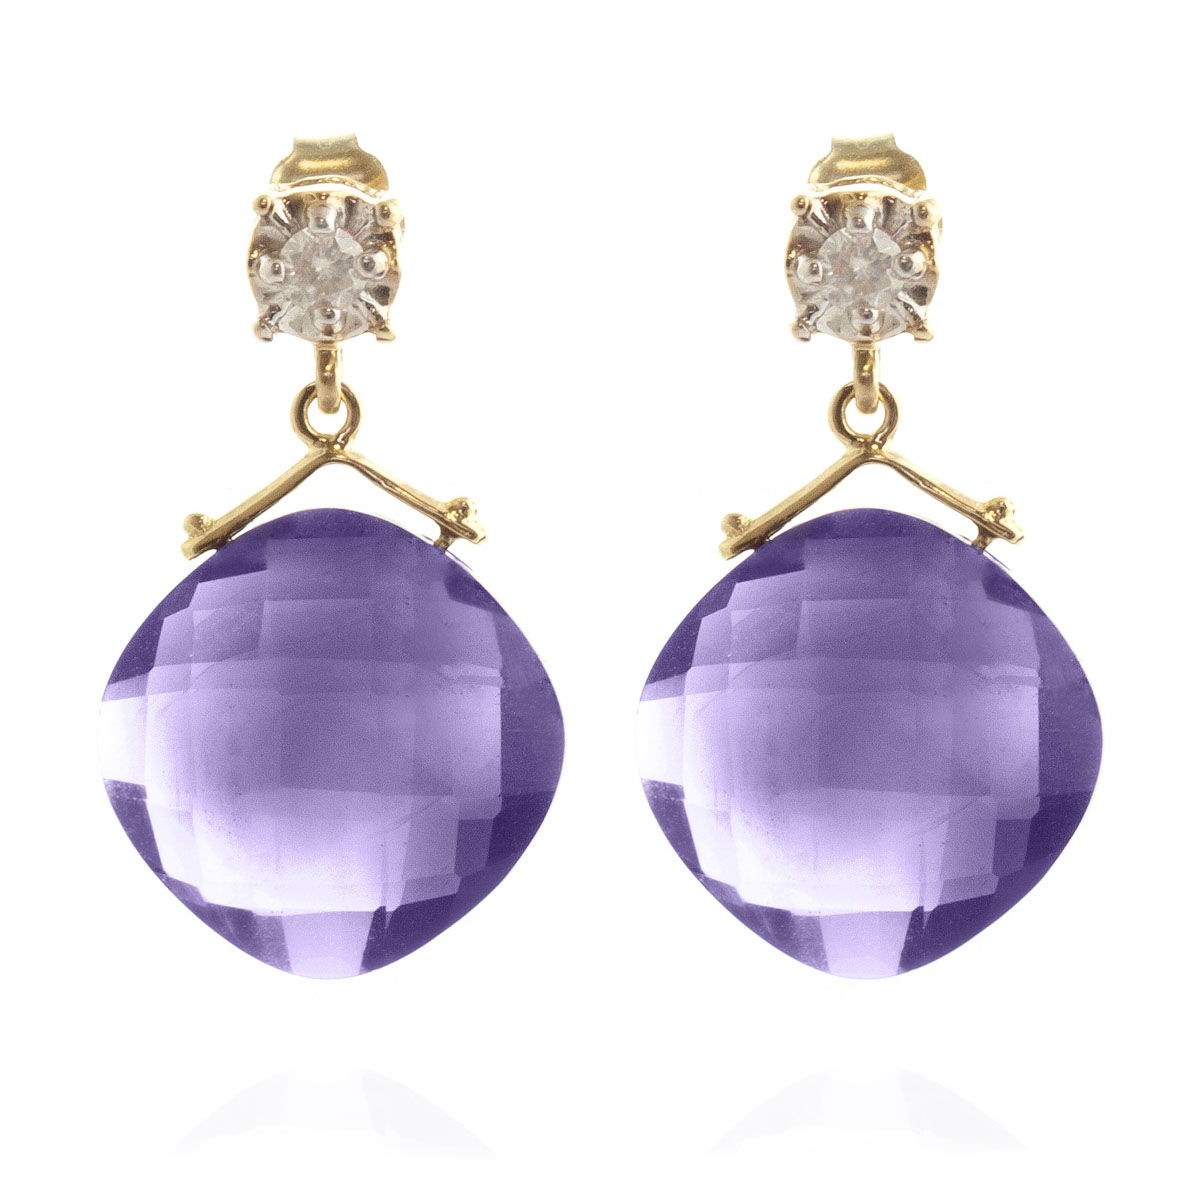 Amethyst & Diamond Deflection Stud Earrings in 9ct Gold